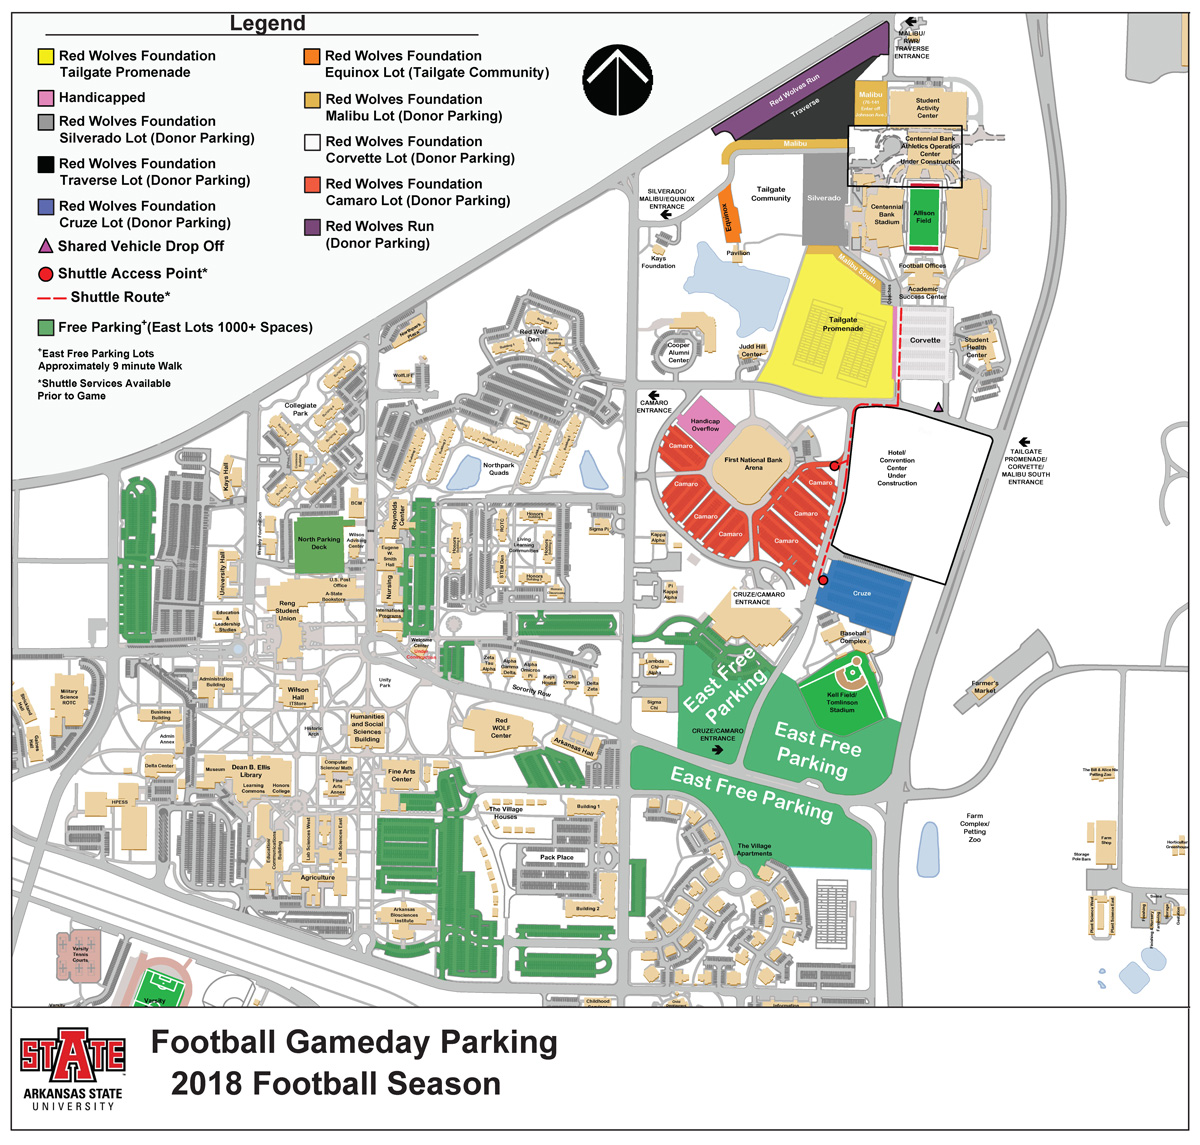 A State Announces Changes to Gameday Parking